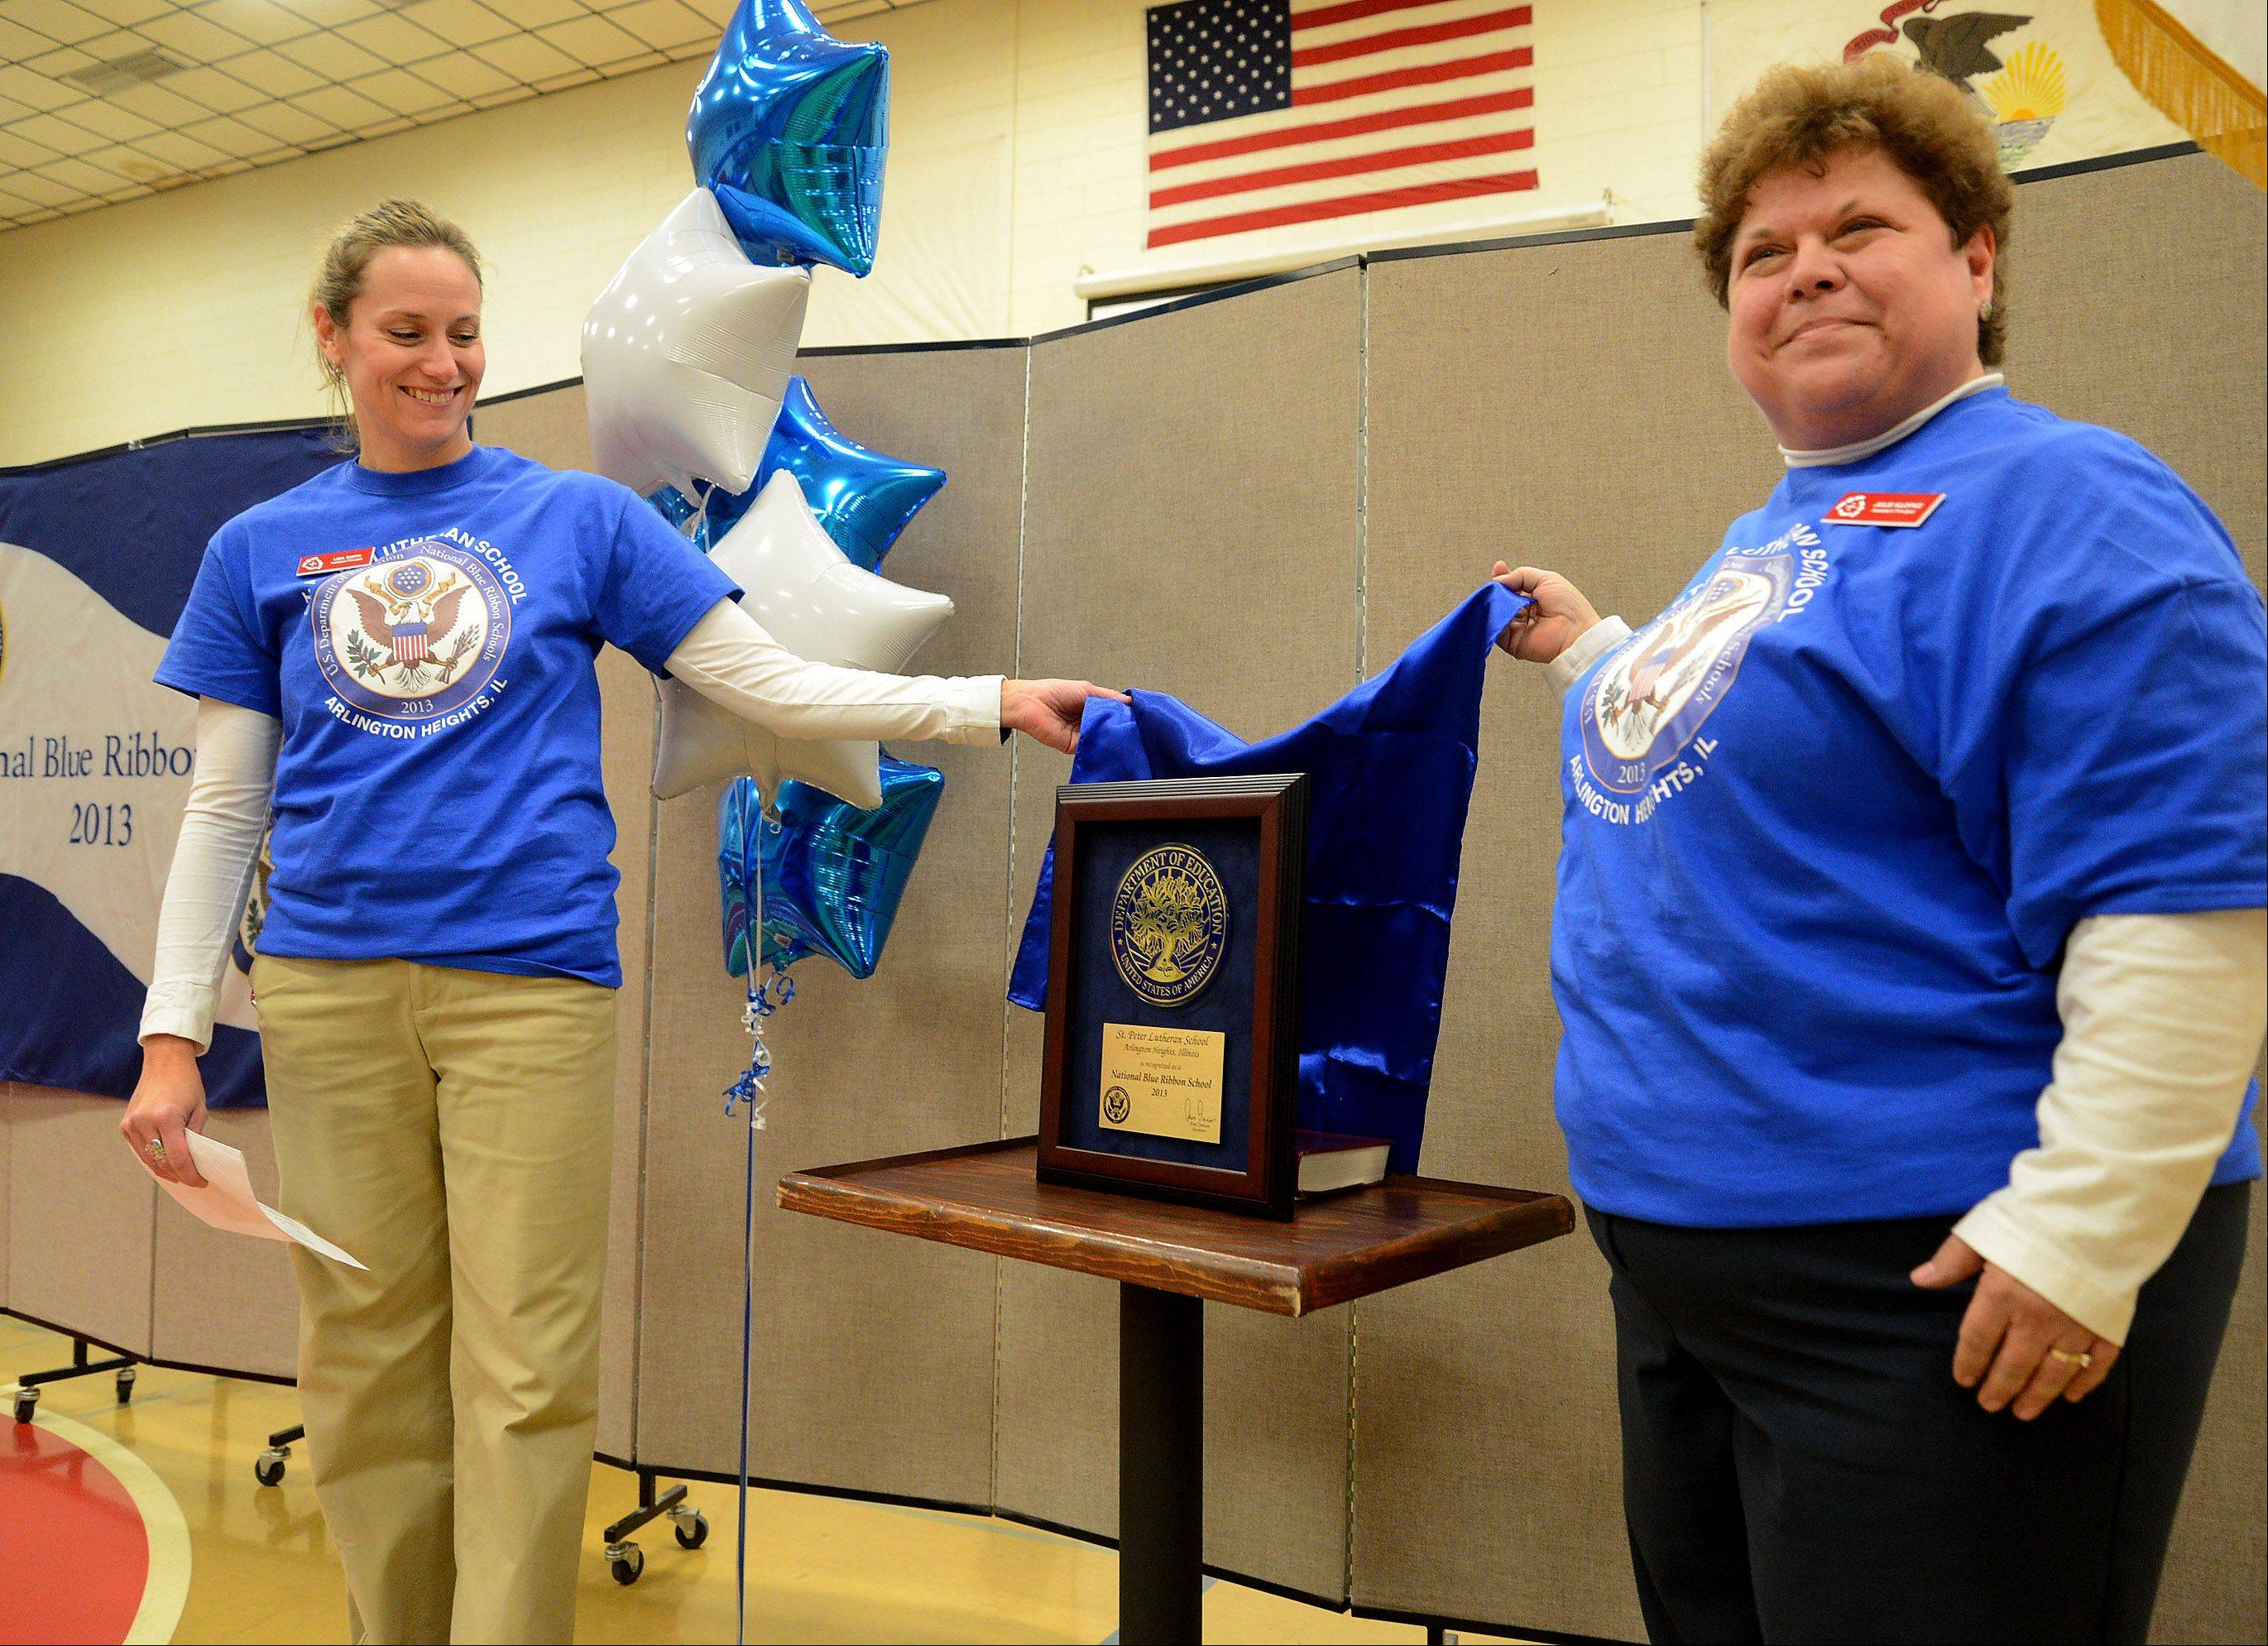 Assistant Principals Lisa Smith, left, and Julie Klopke unveil the Blue Ribbon Monday, which was awarded to St. Peter Lutheran School in Arlington Heights during an assembly.